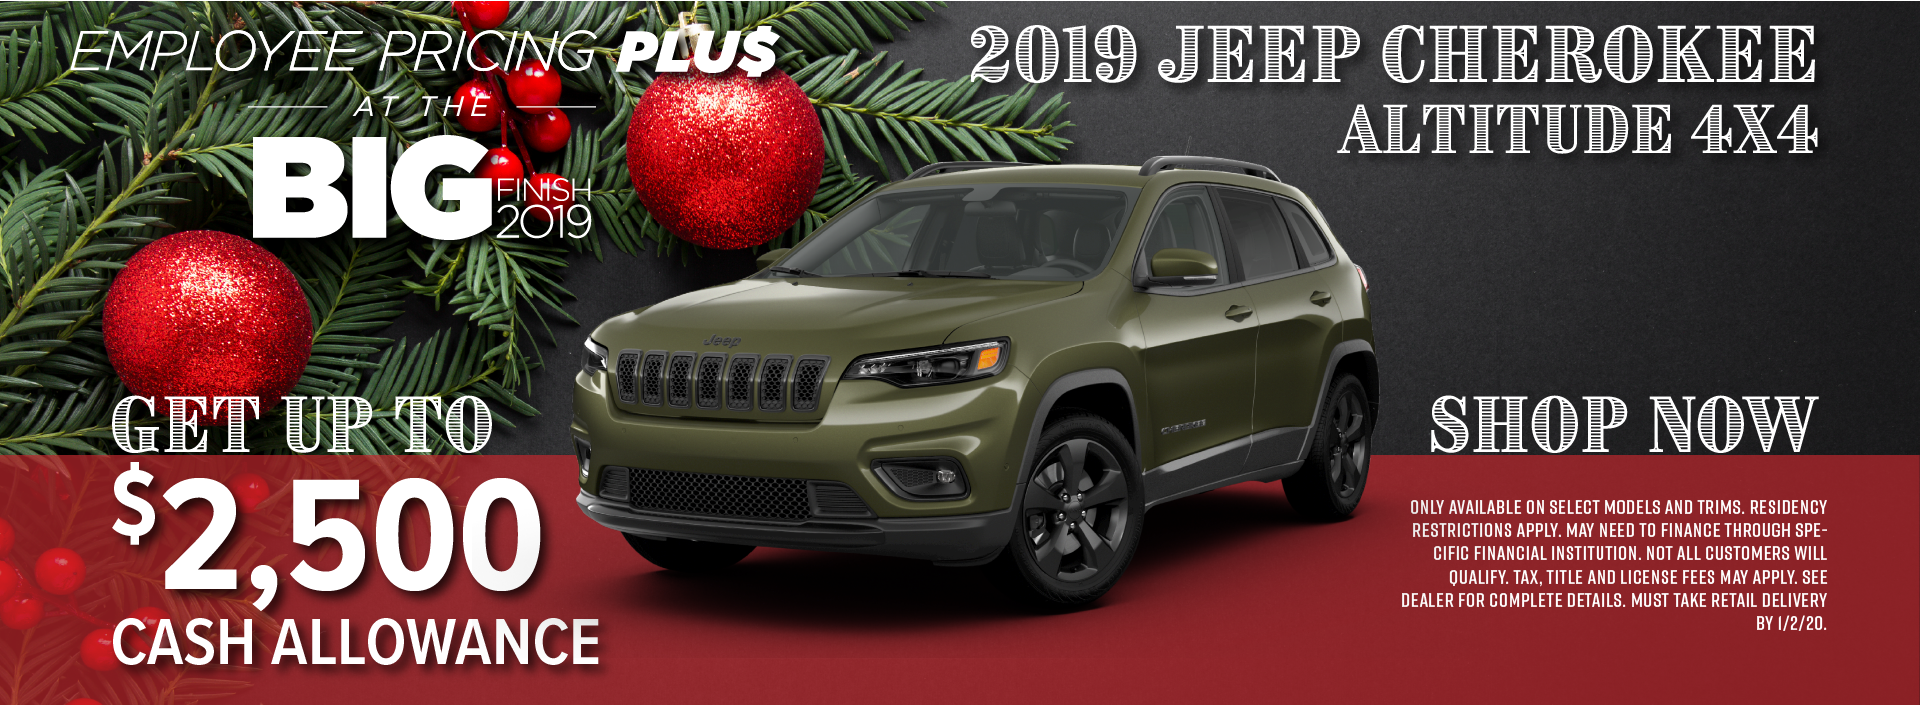 Don't Miss This Jeep Cherokee Special near Longmont CO